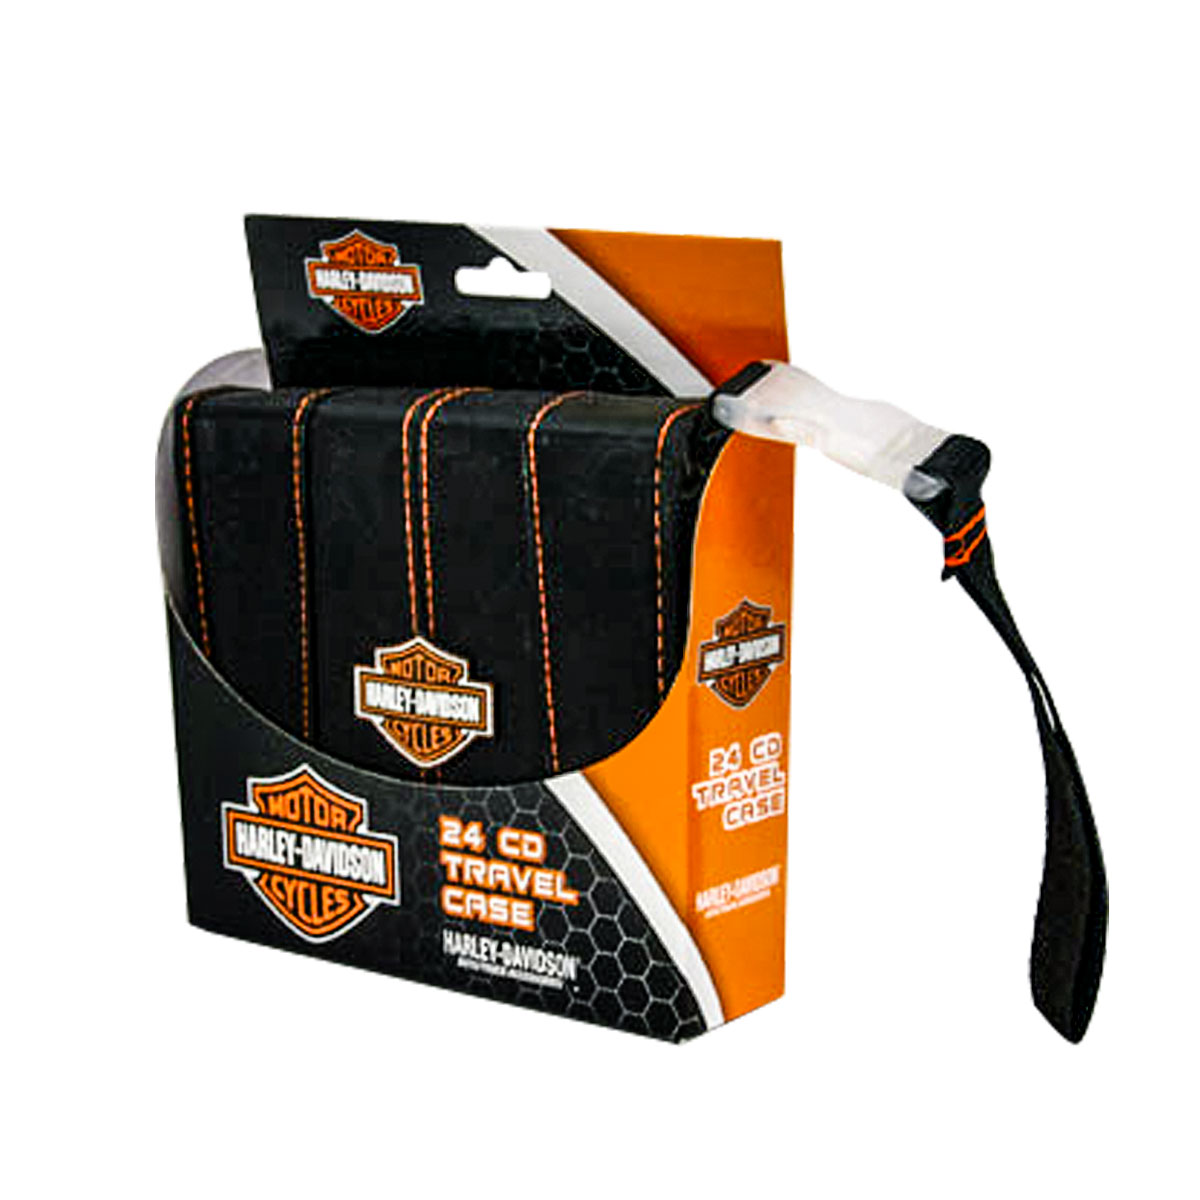 Harley Organizer Packaging